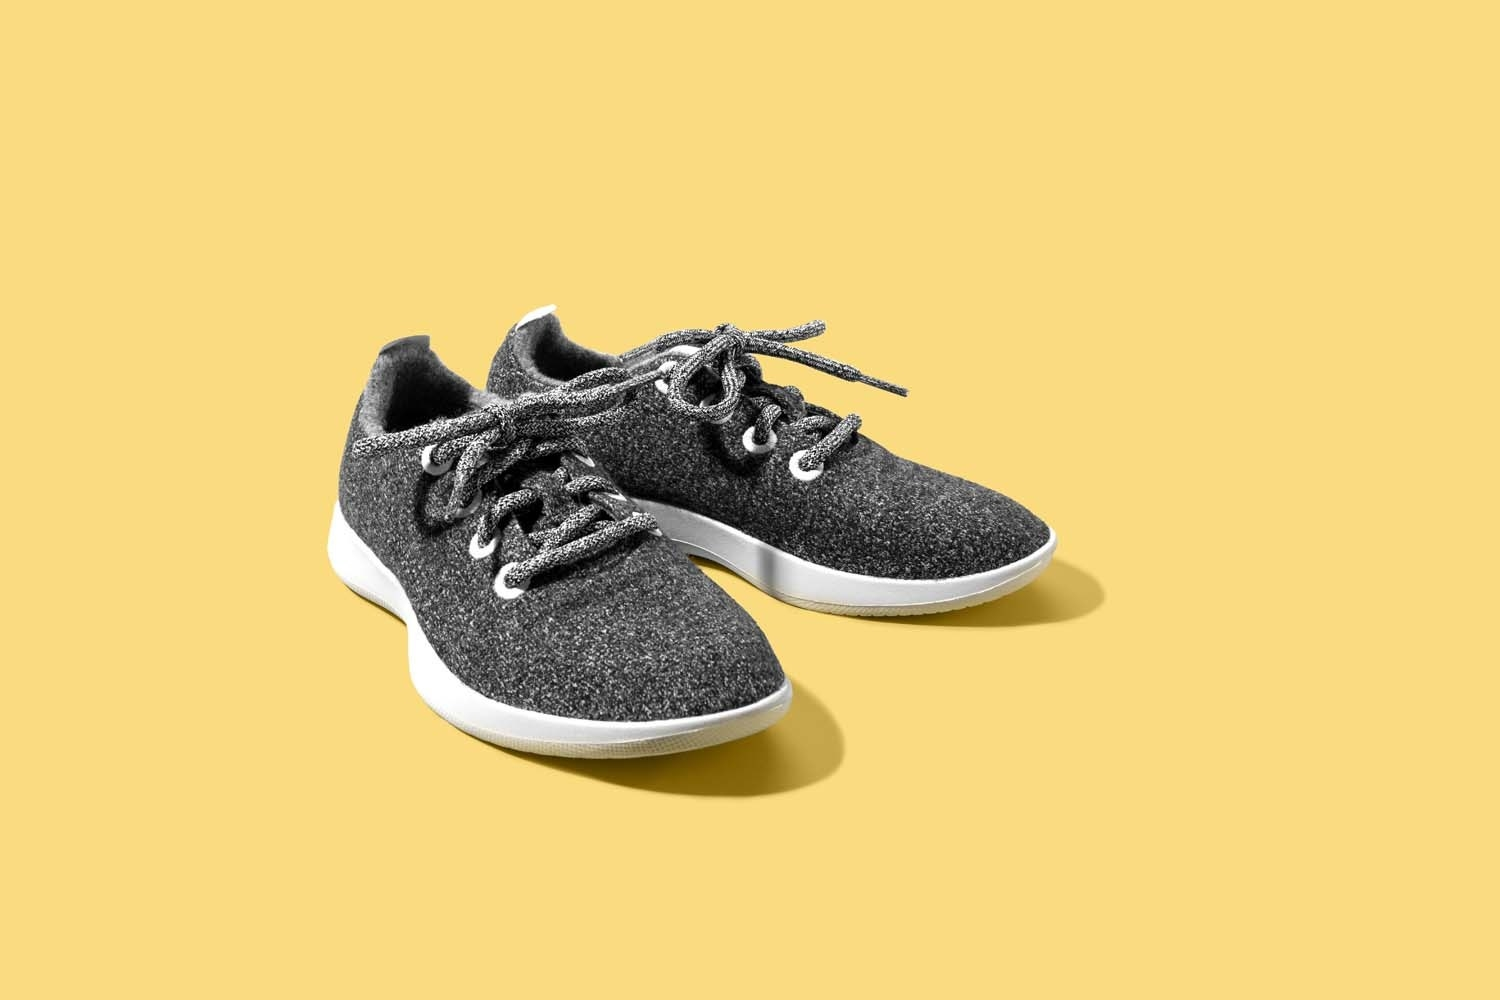 comfortable everyday sneakers